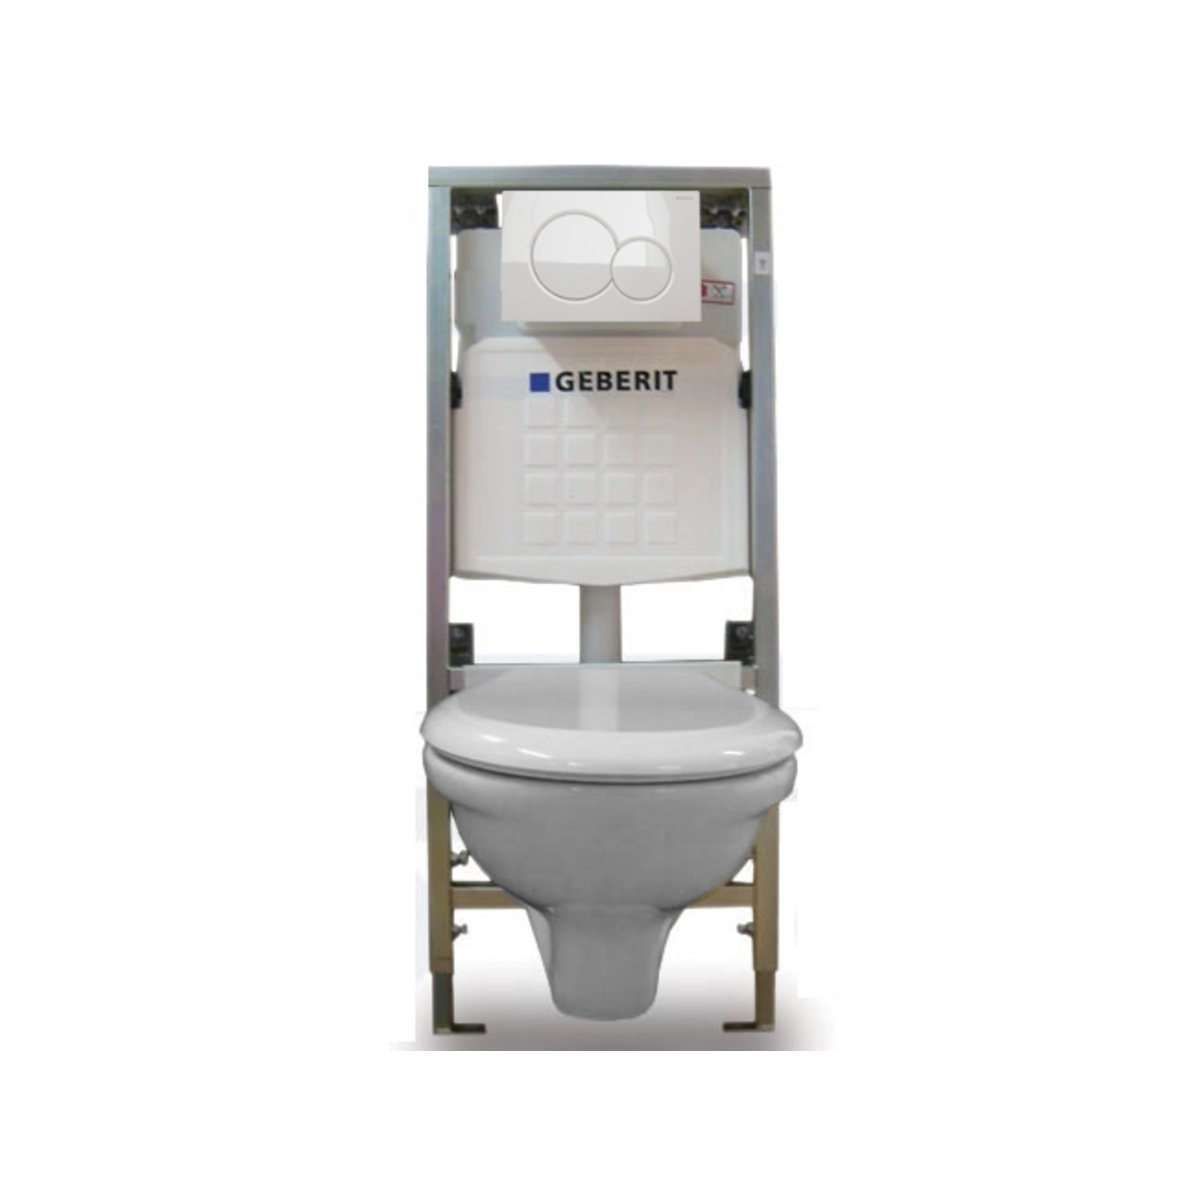 Plieger brussel toilet set met geberit inbouwreservoir for Geberit products